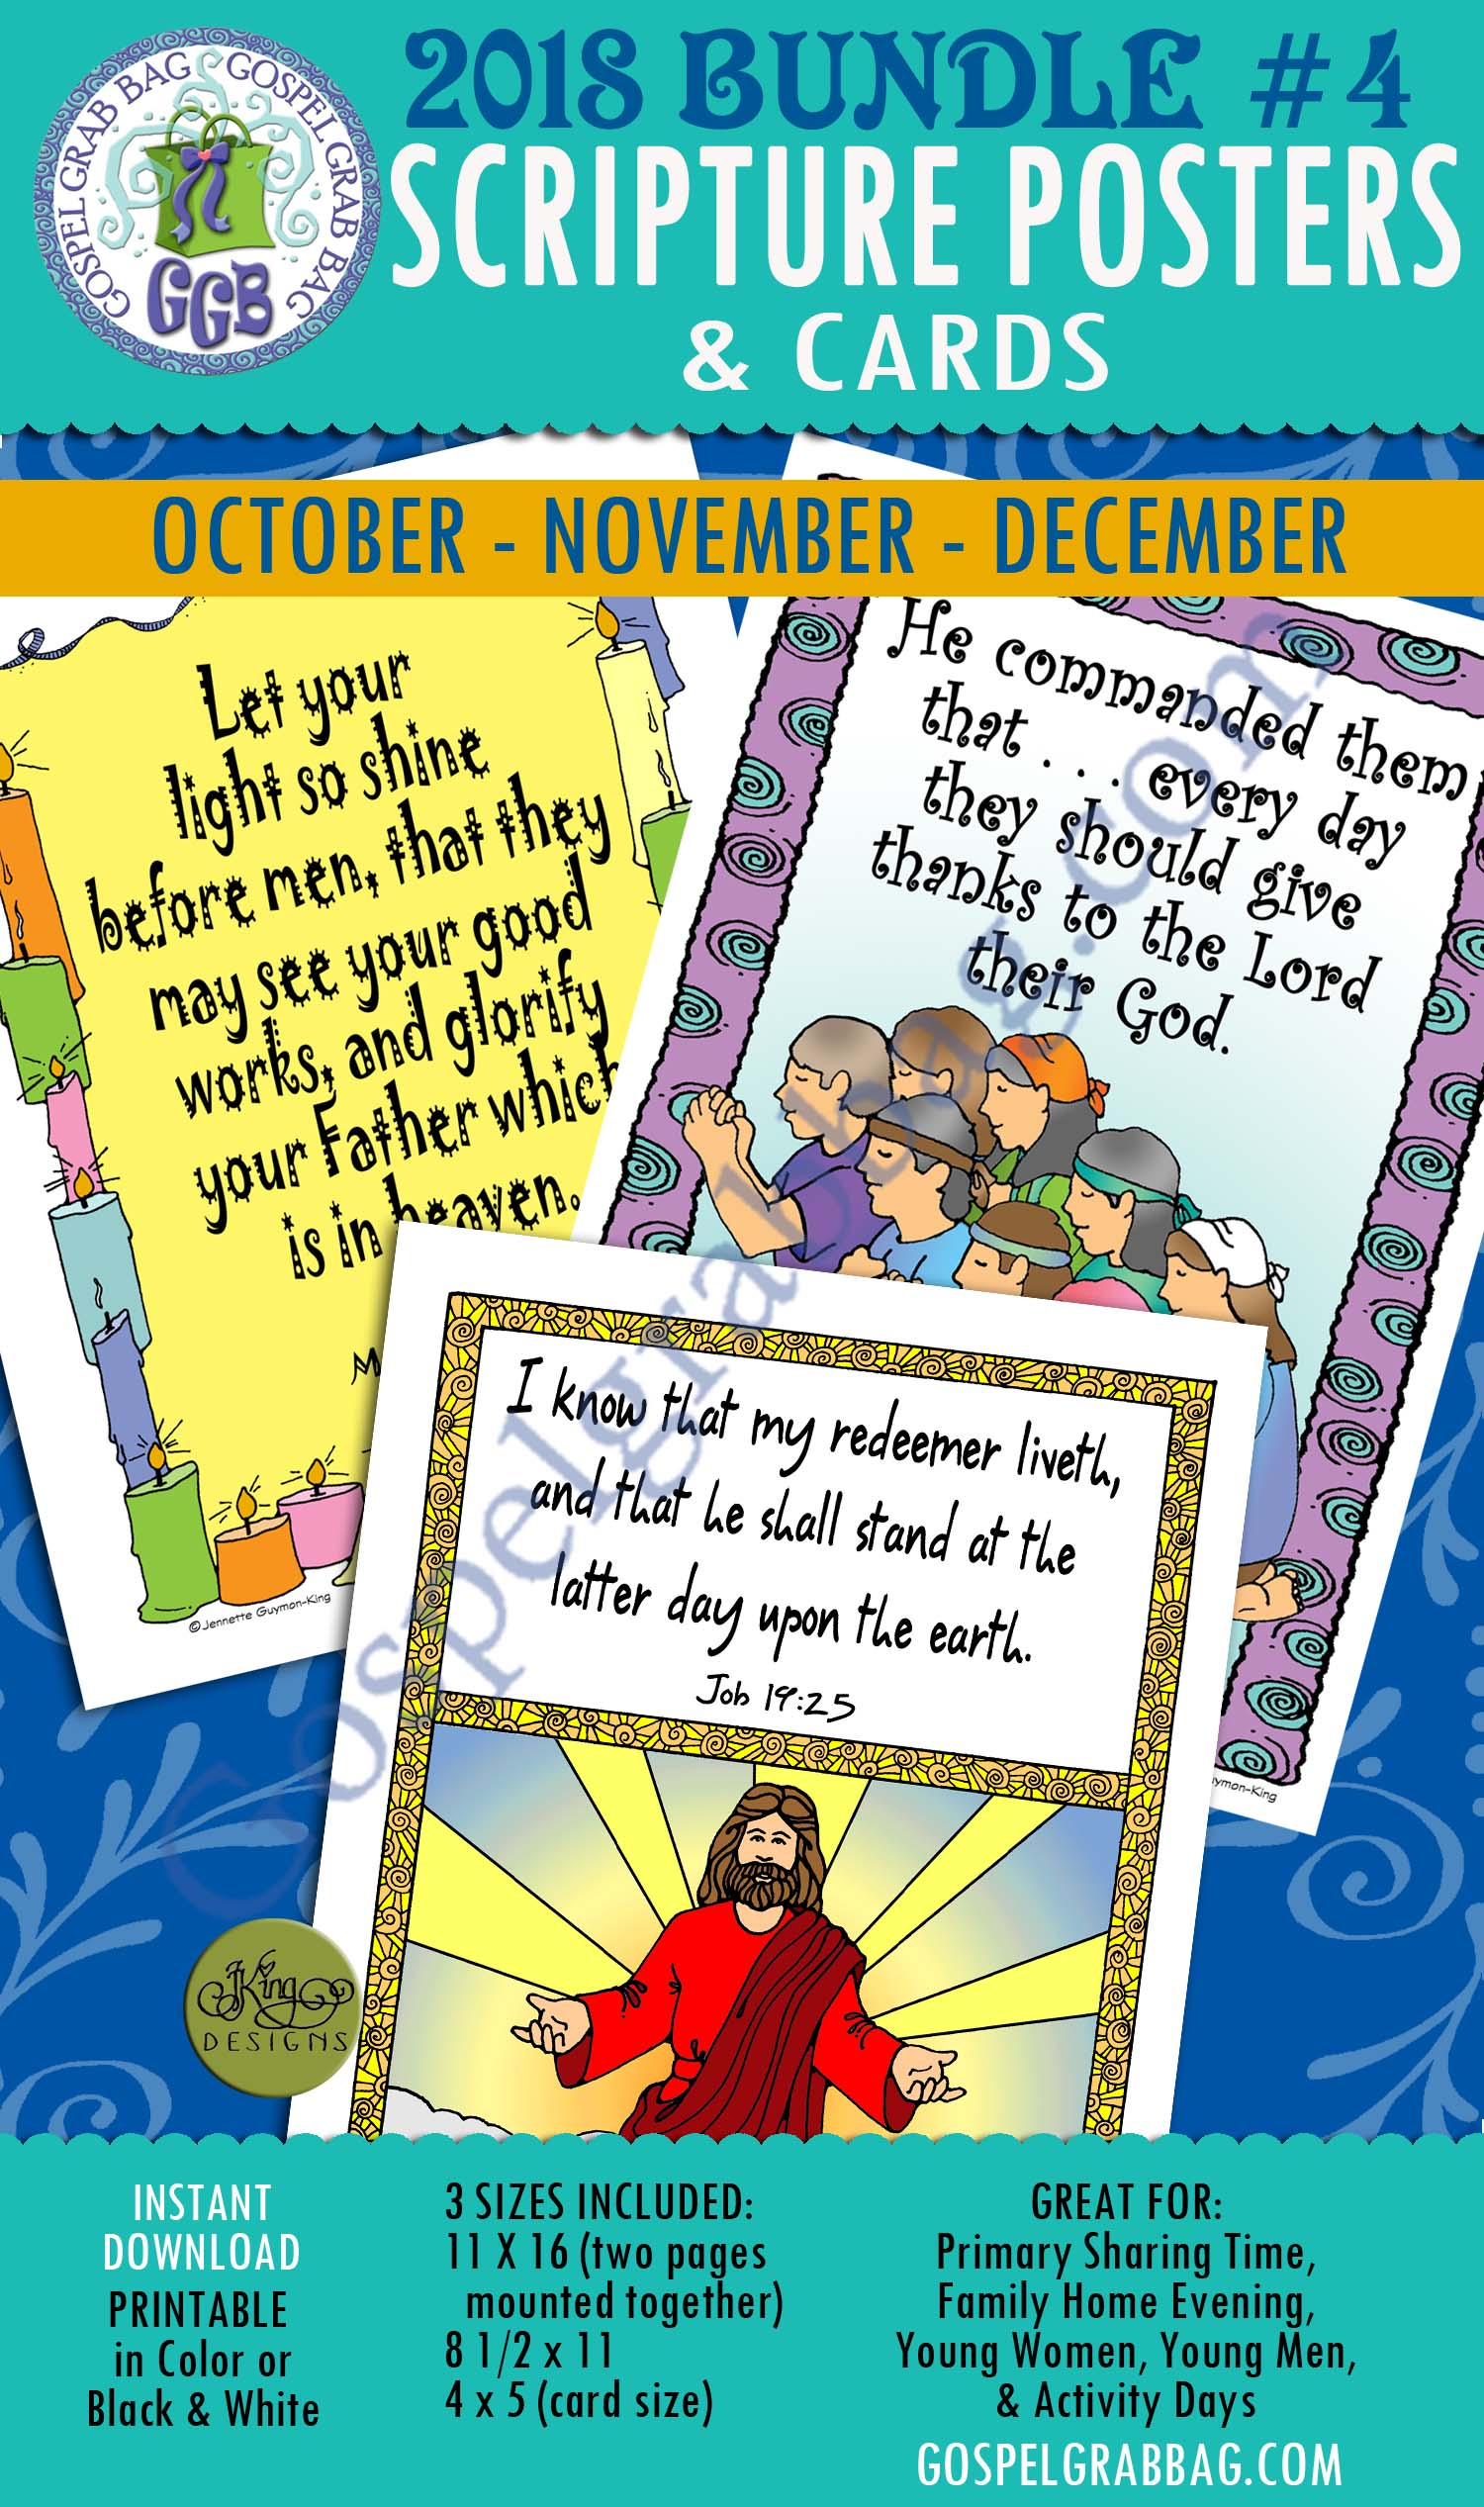 400 BUNDLE 4 Scripture Posters Cards For Sharing Time October November